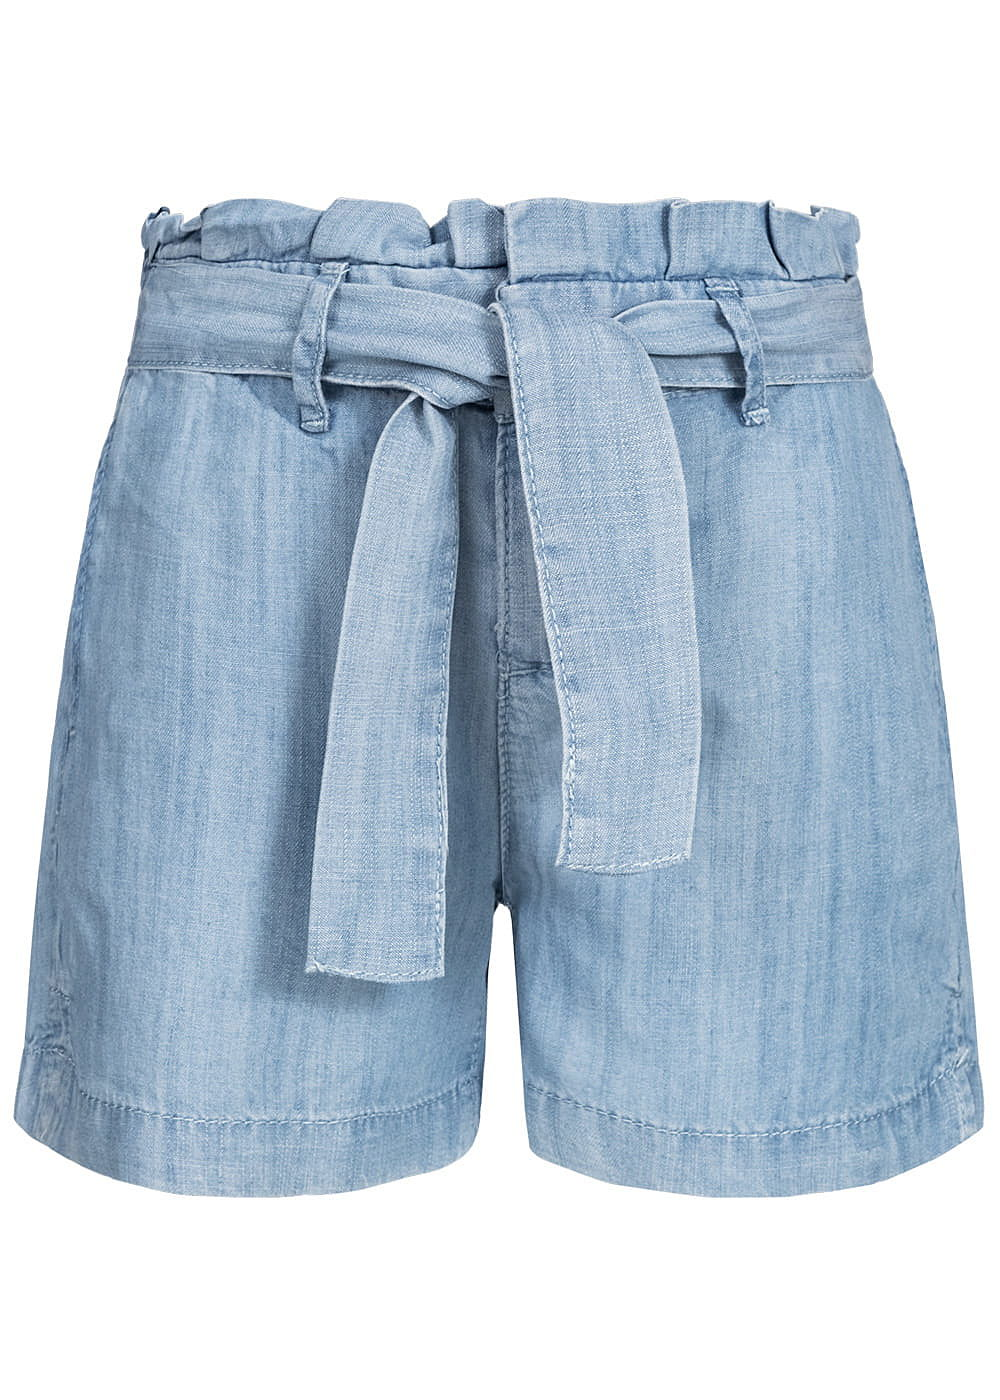 Name It Kids Mädchen Paper- Bag Shorts Belt 2-Pockets NOOS hell blau denim - Art.-Nr.: 19051693